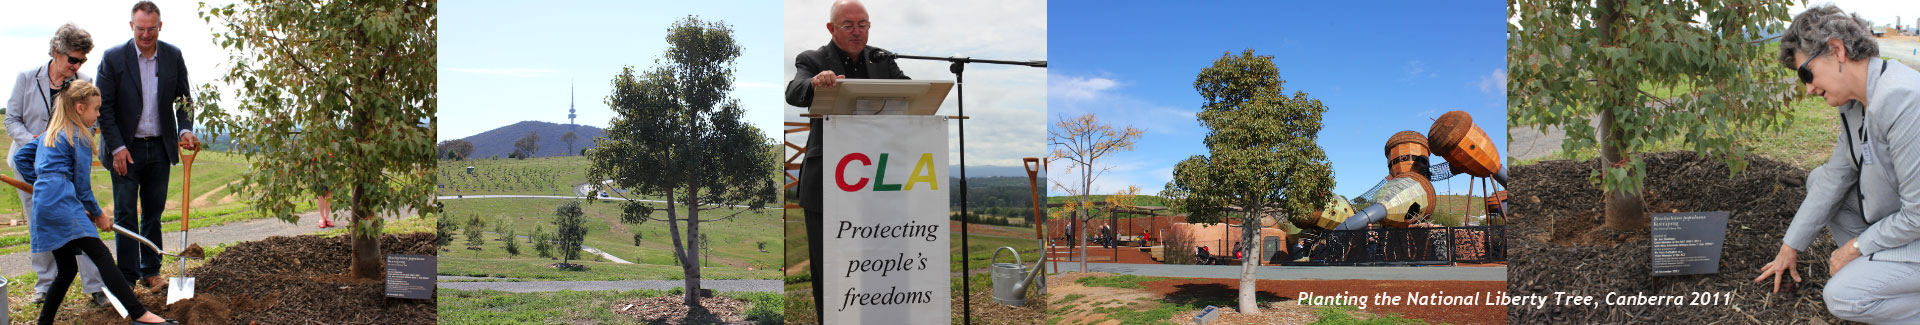 CLArion April 2018: Religious freedom inquiry delayed, new CLA initiatives